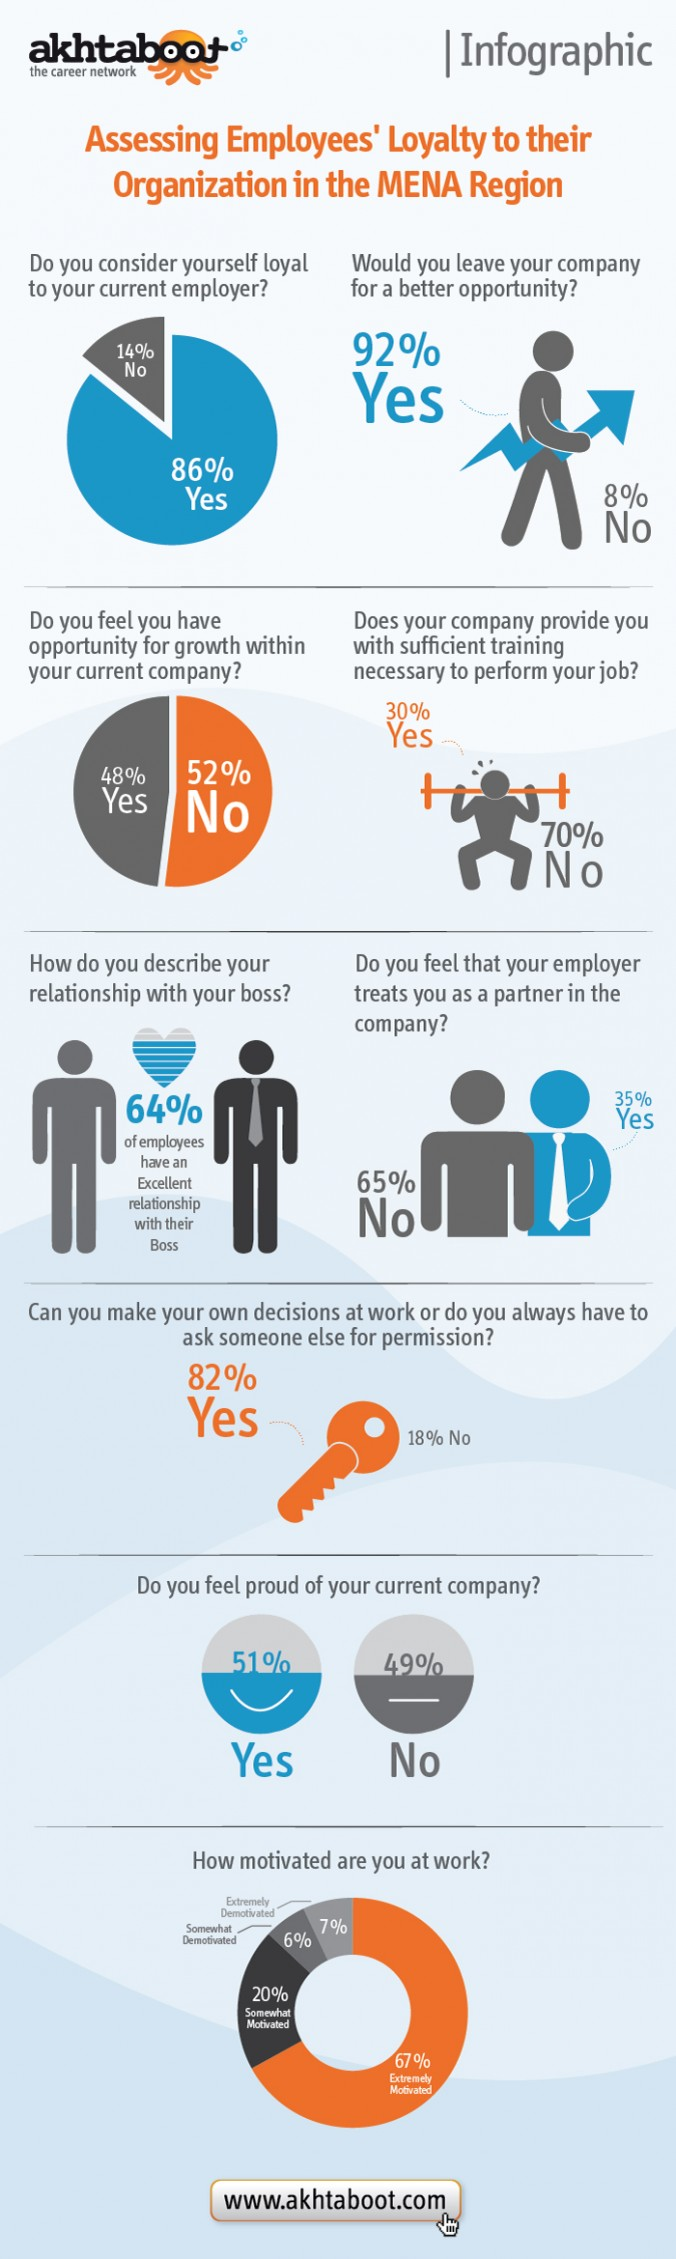 Infographic yes no